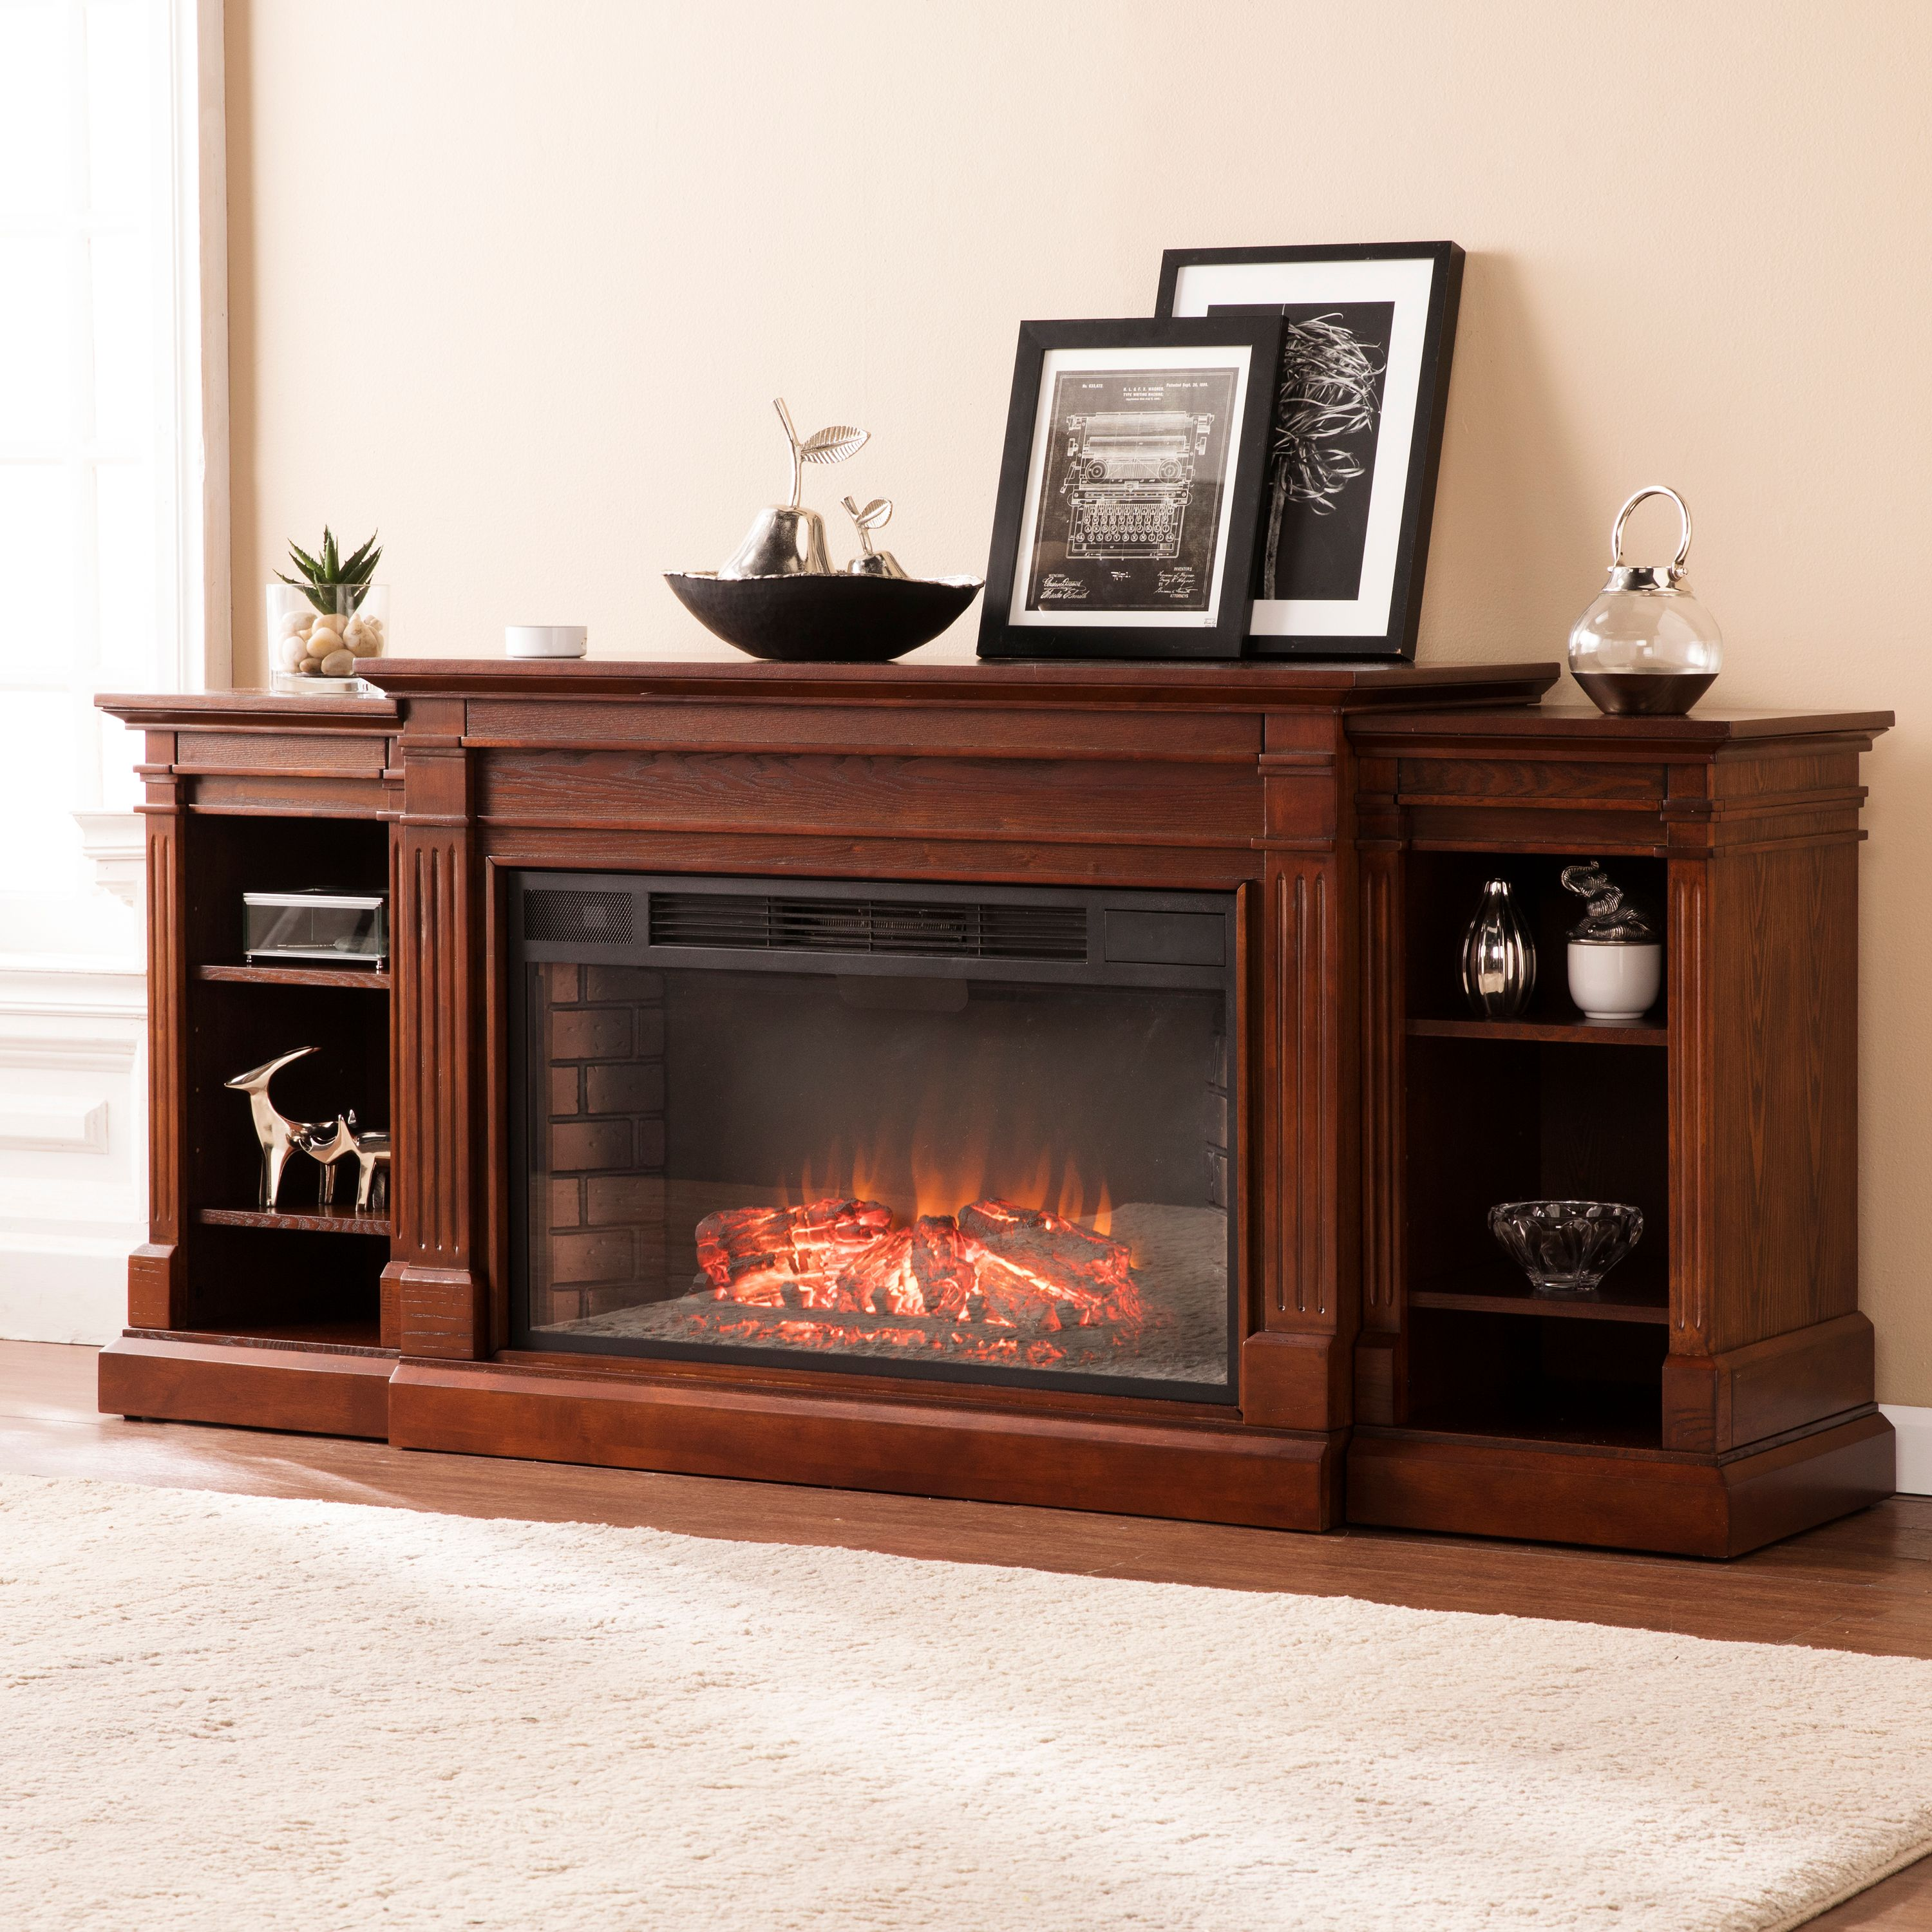 Ryhorn Low Profile Electric Fireplace, Espresso